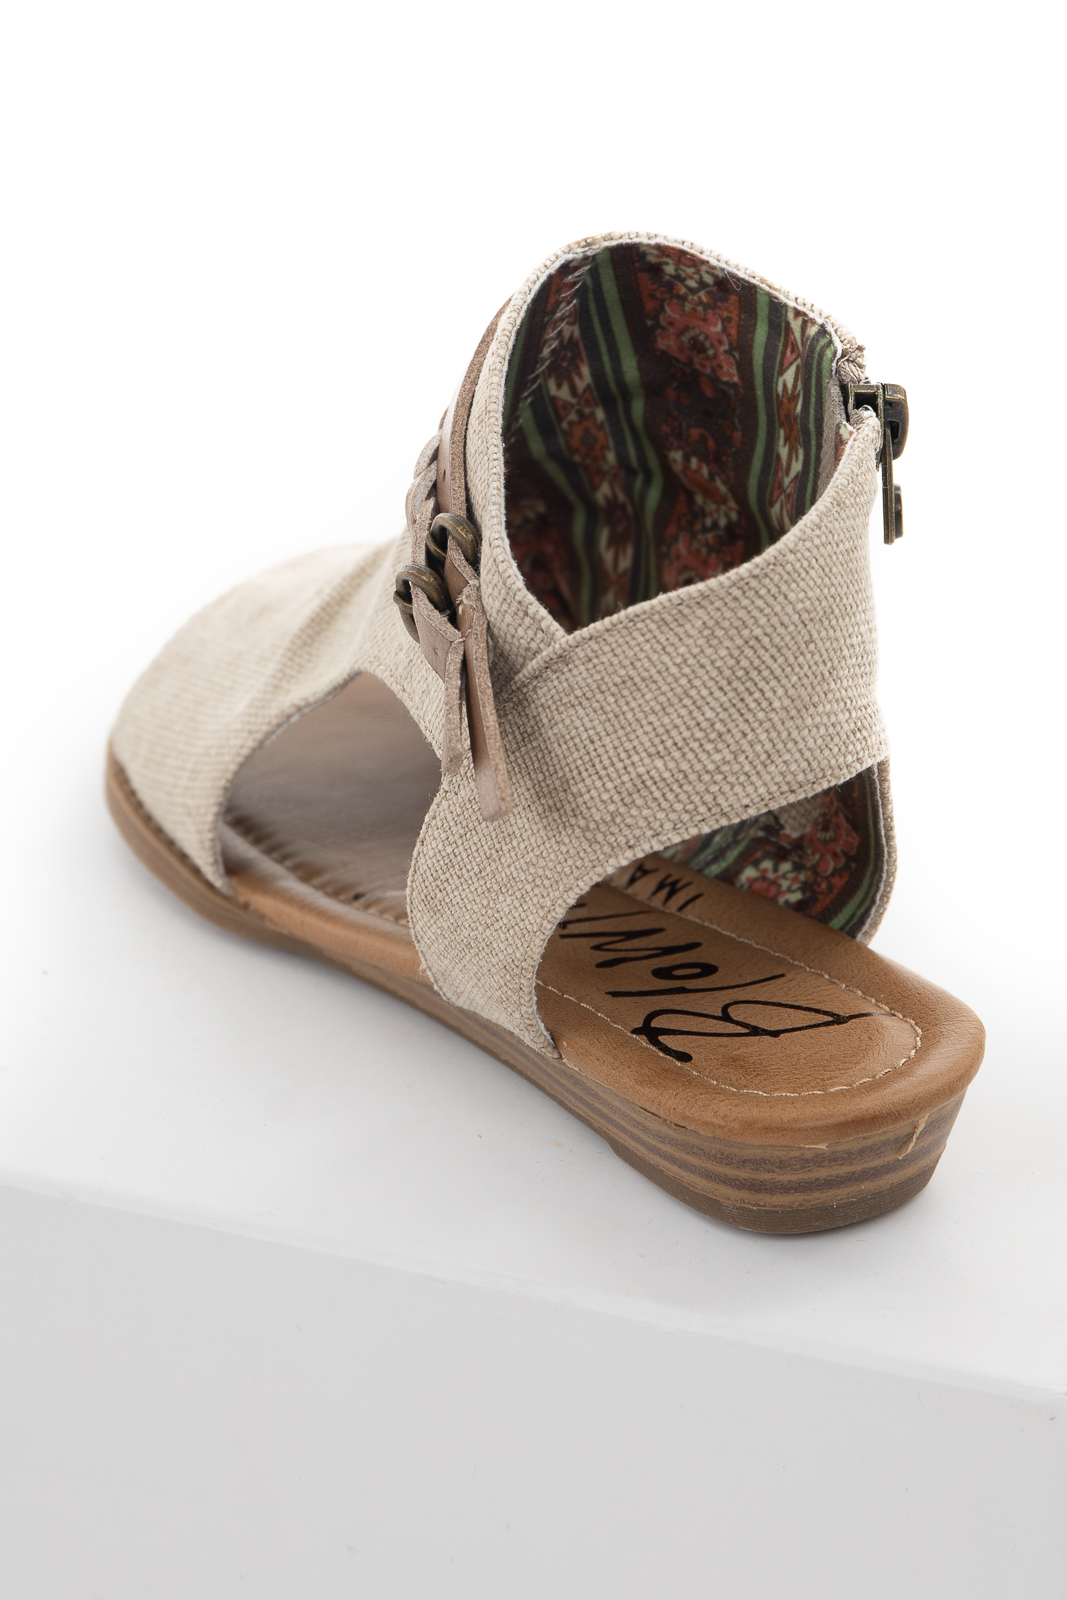 Oatmeal Fabric Top Open Toe Sandals with Buckle Details